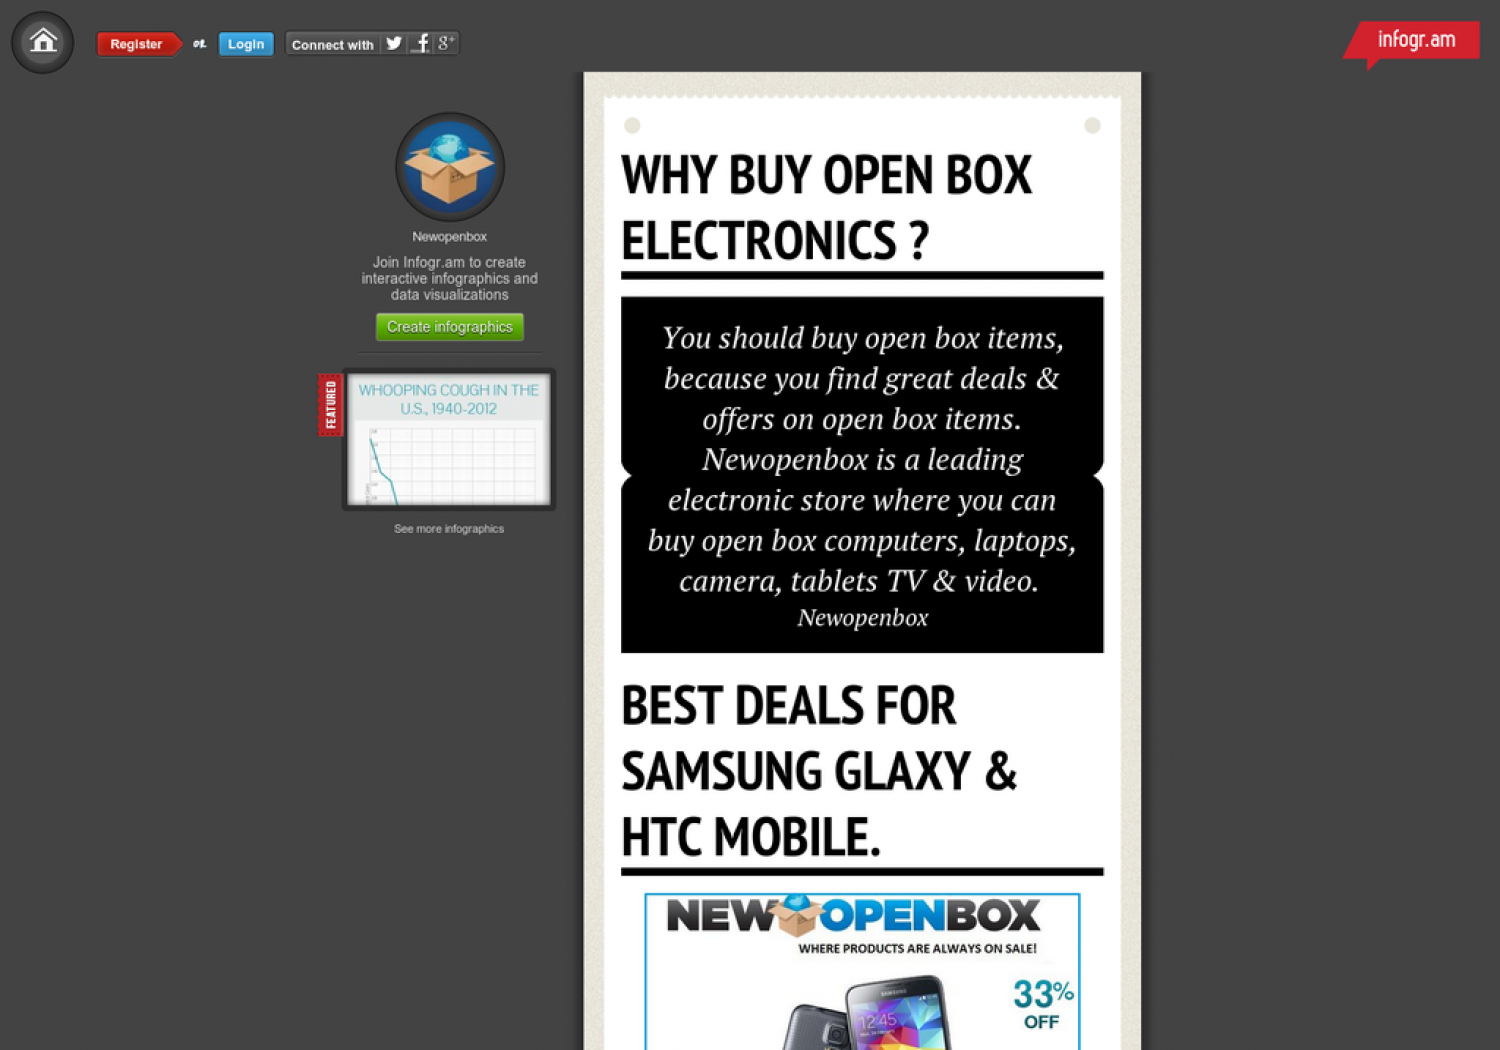 Why Buy Open Box Electronics ? Infographic